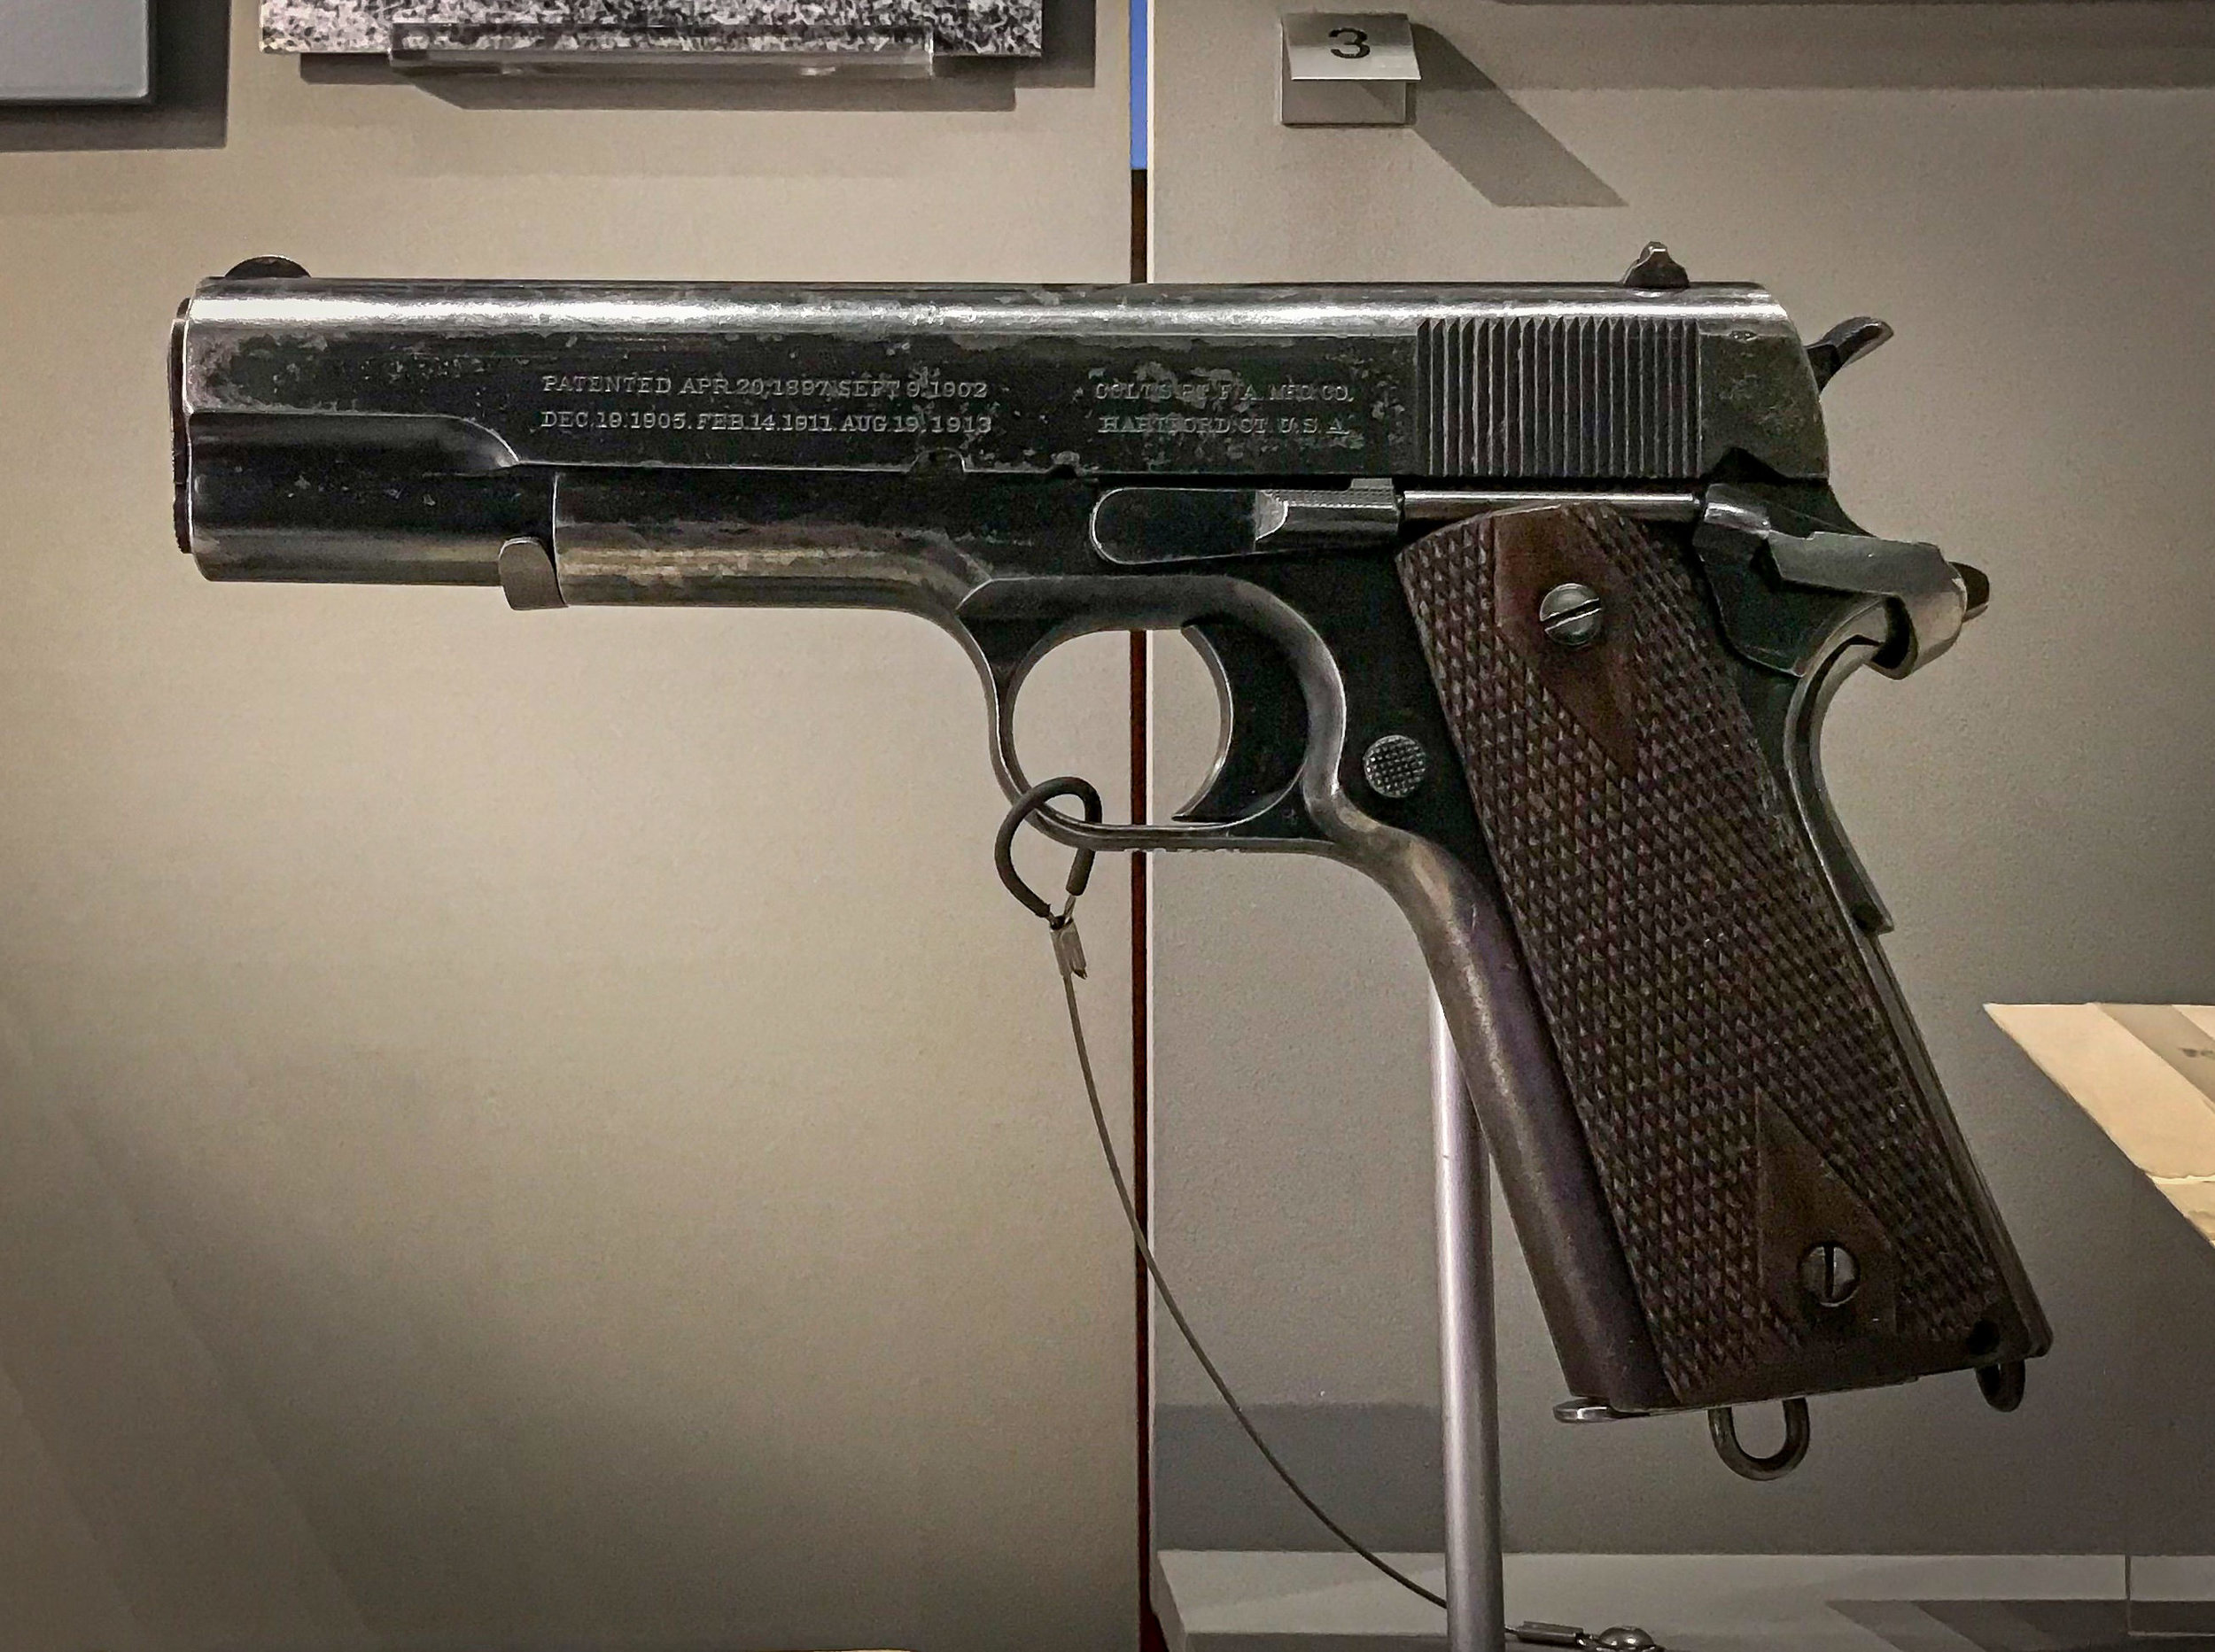 Churchill's favorite sidearm (and he had a lot of them); an American Colt M1911 that he purchased when he went to war early in WWI. I couldn't agree more with his choice.